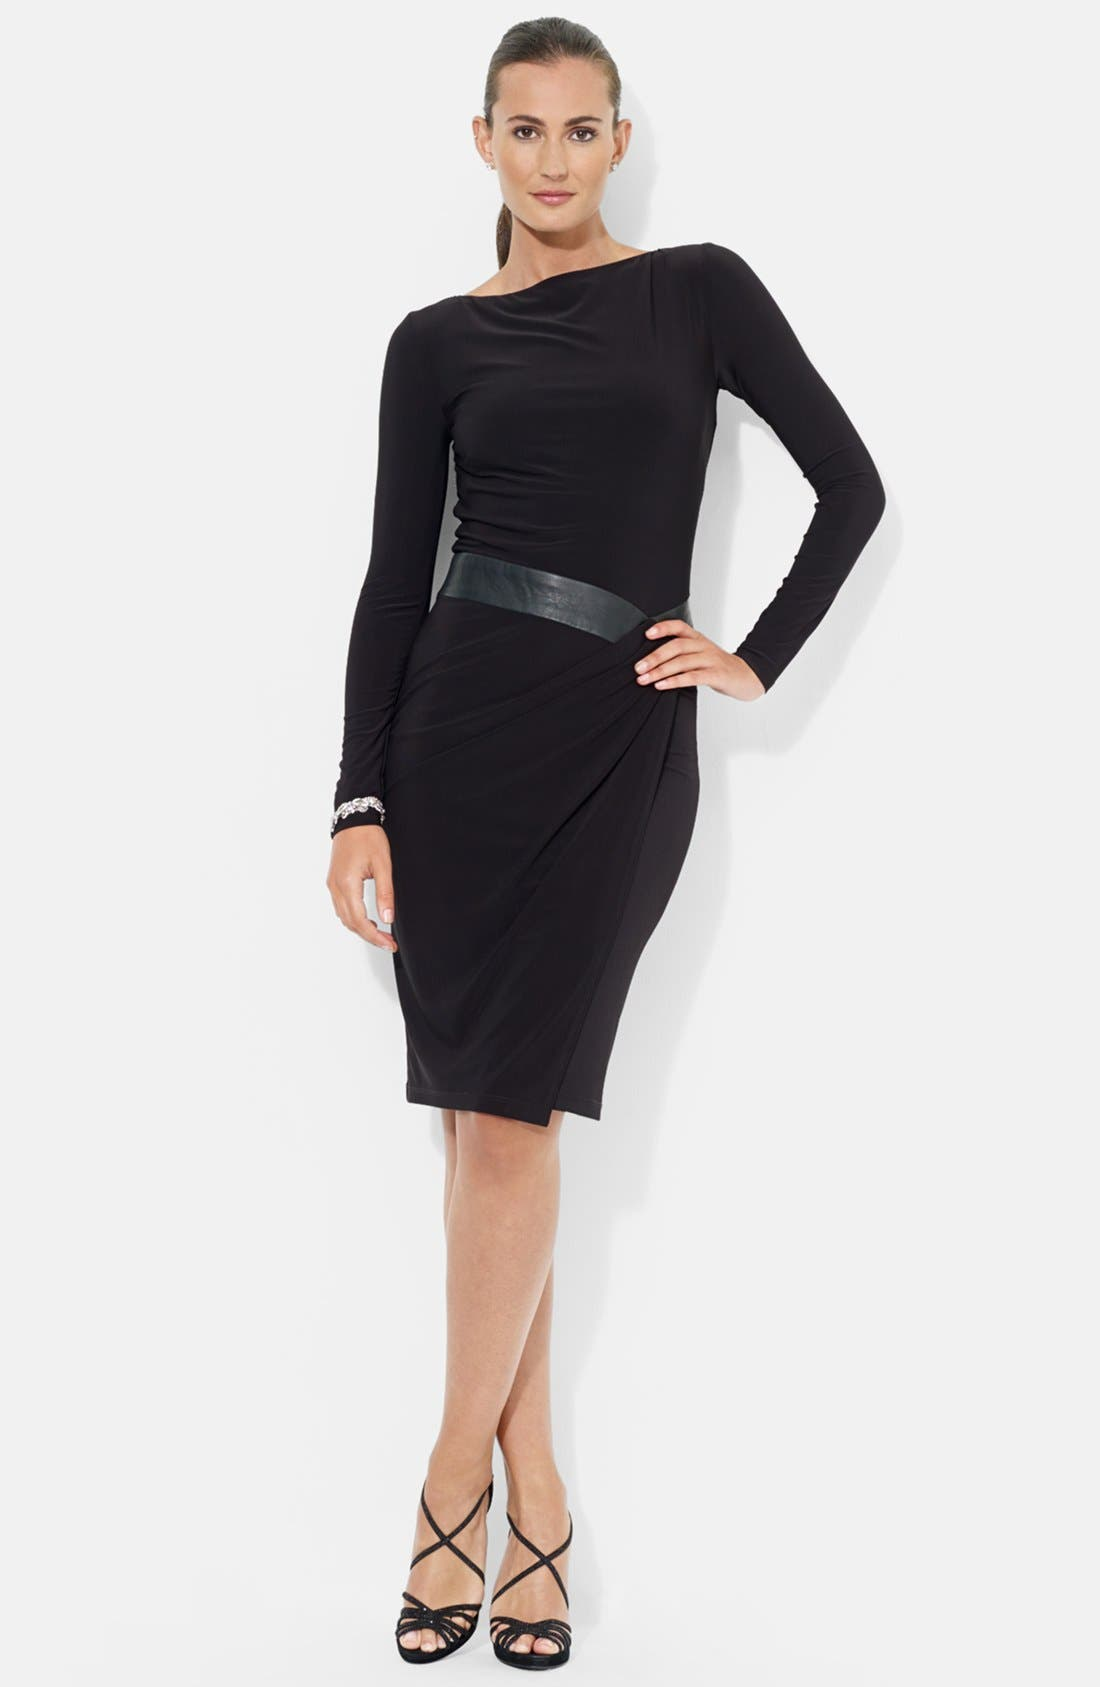 Main Image - Lauren Ralph Lauren Faux Leather Waistband Matte Jersey Dress